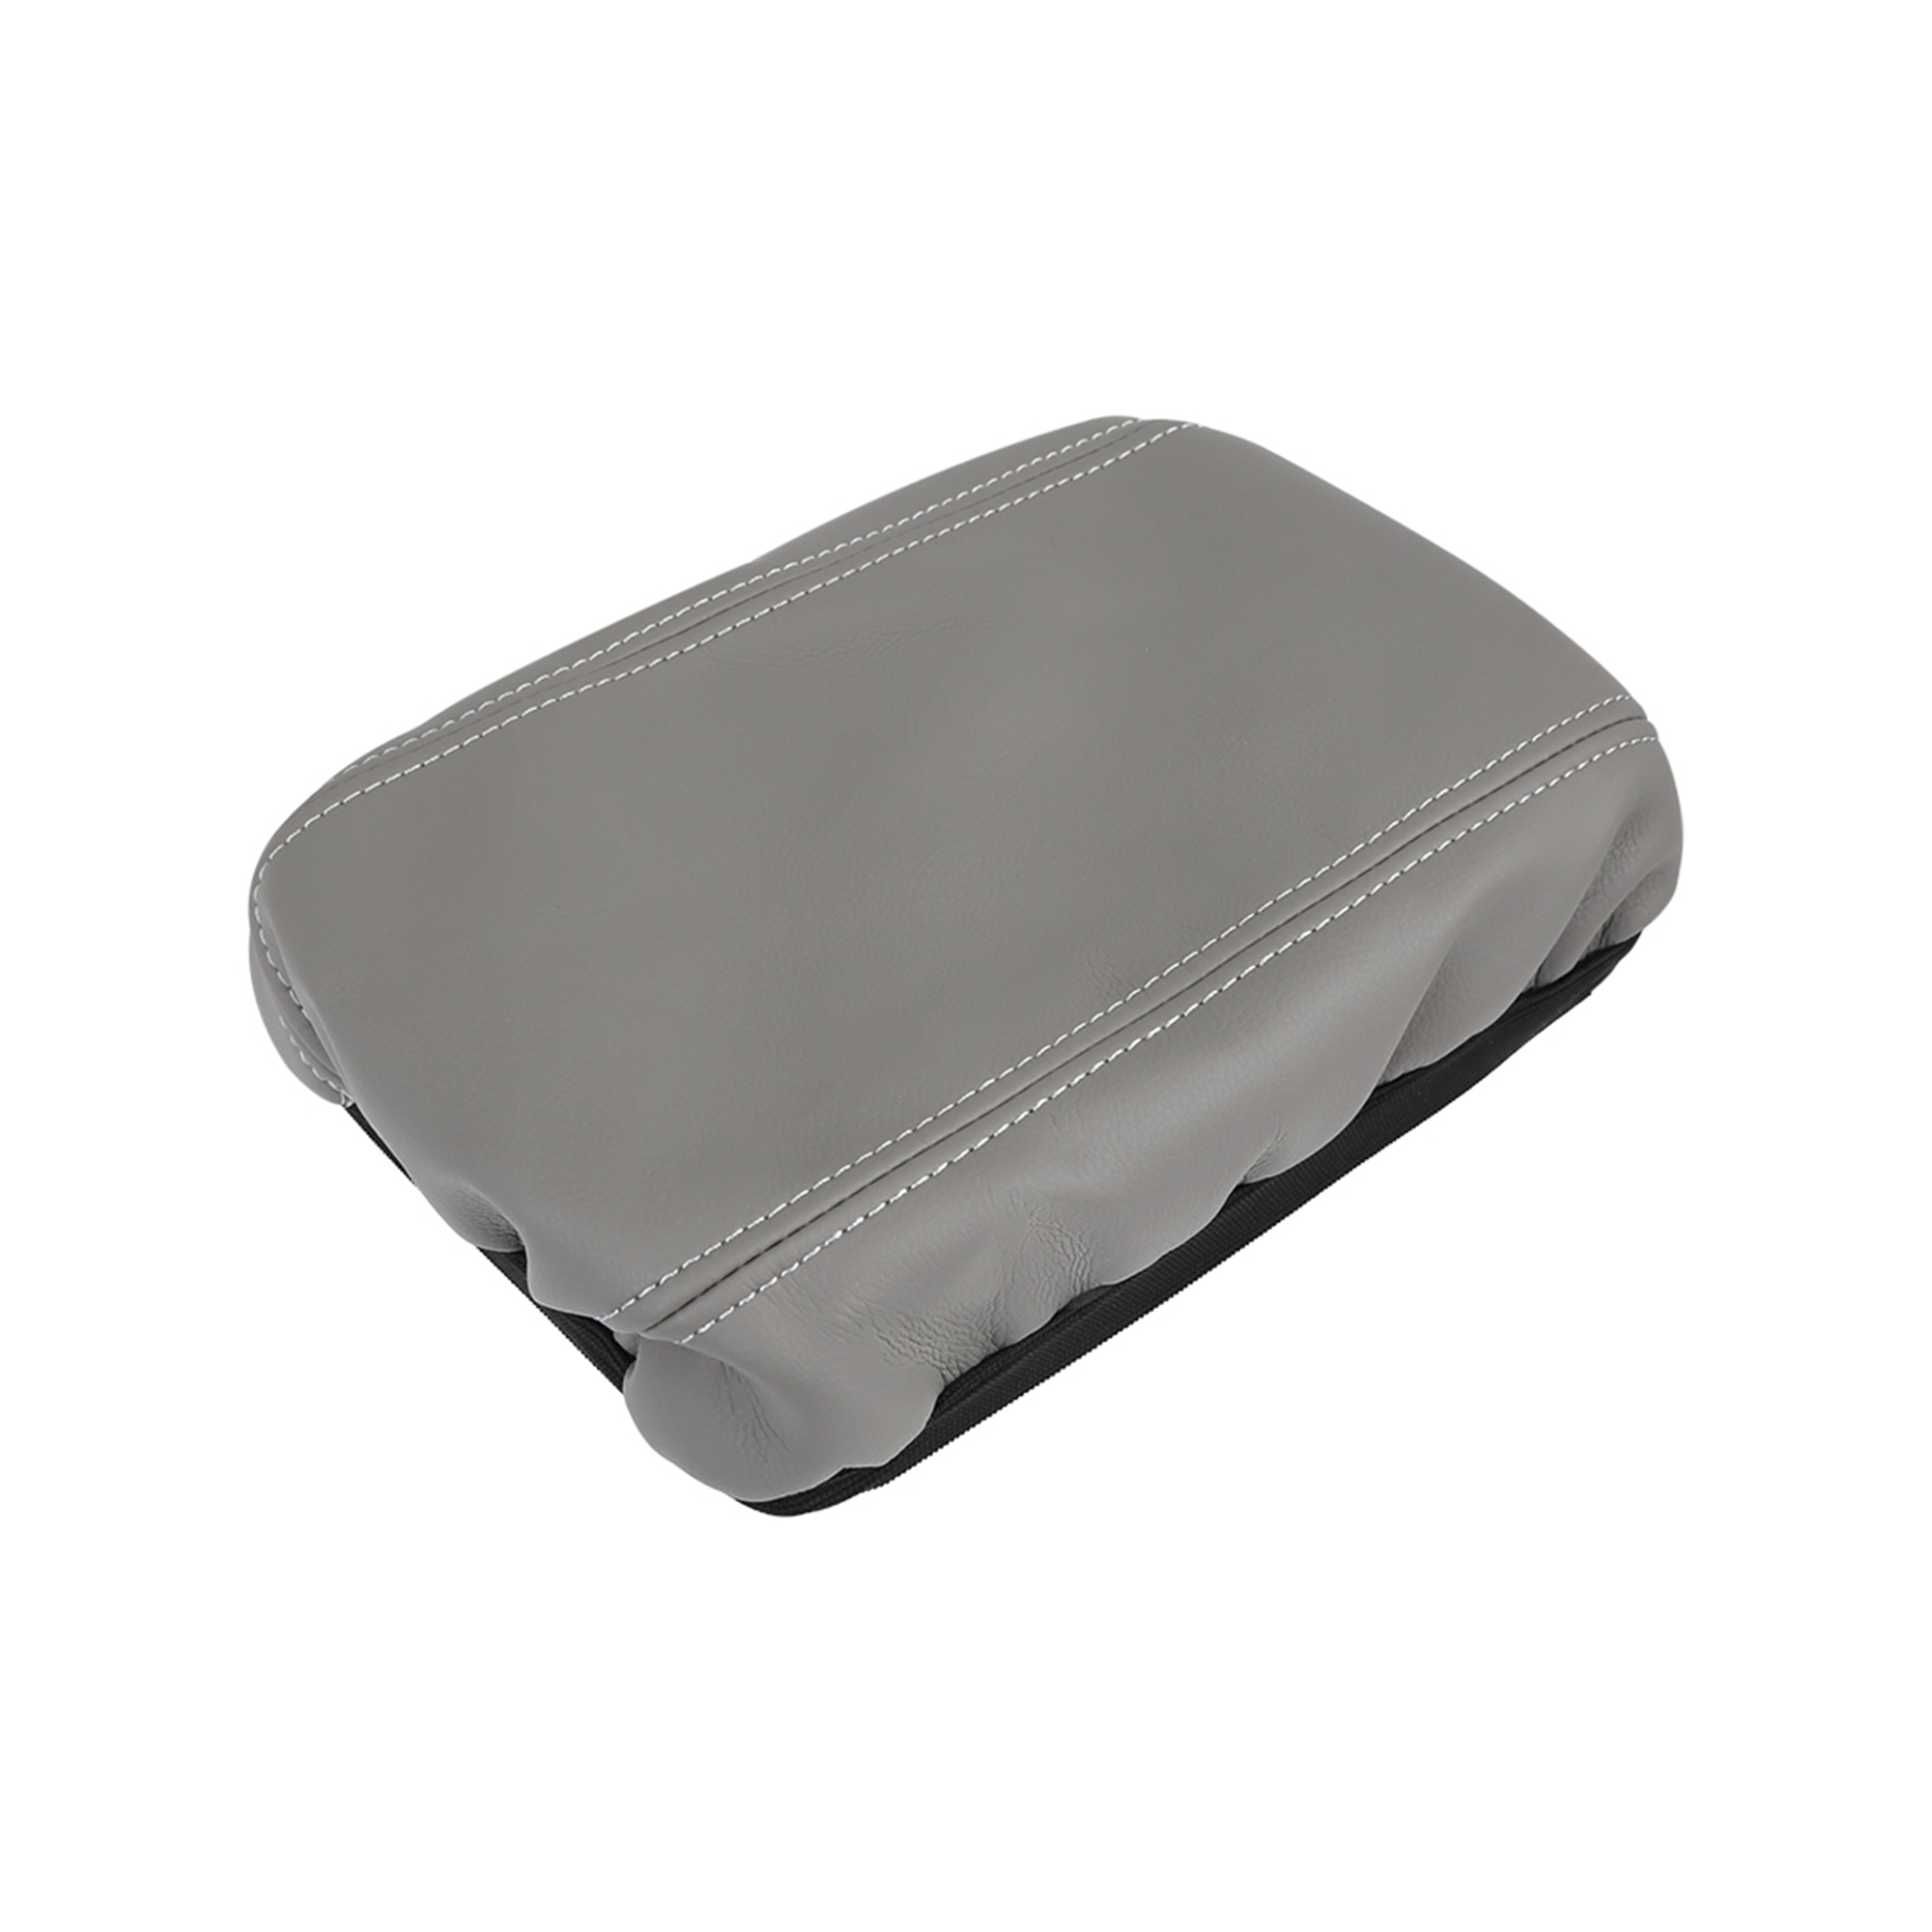 Microfiber Leather Center Console Lid Armrest Cover Gray for 2006-11 Honda Civic